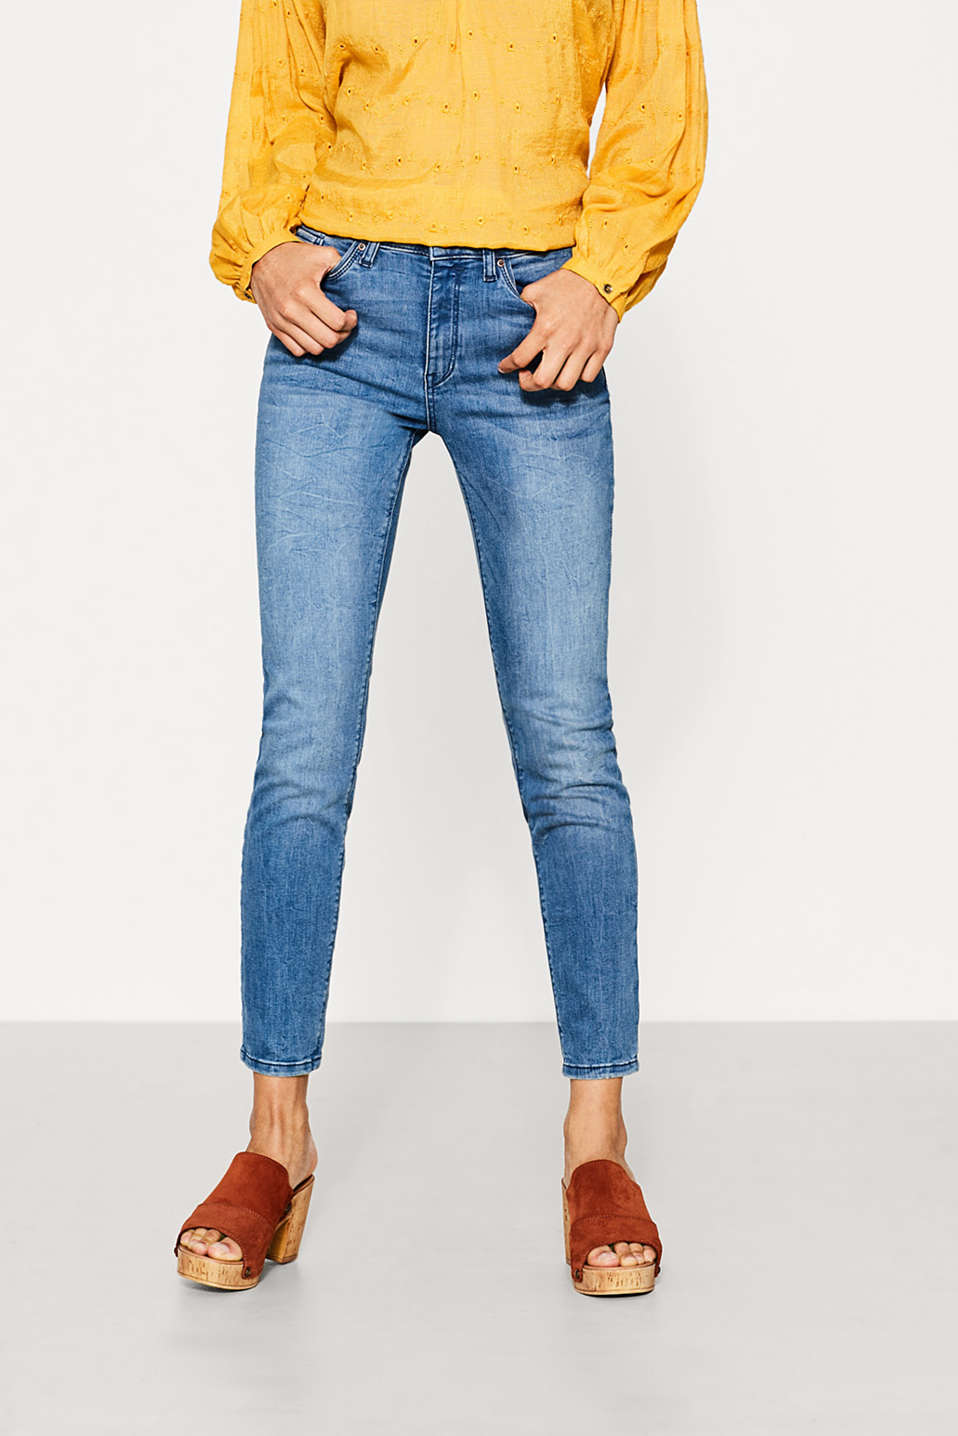 Esprit - Verkürzte High-Waist-Denim mit Stretch